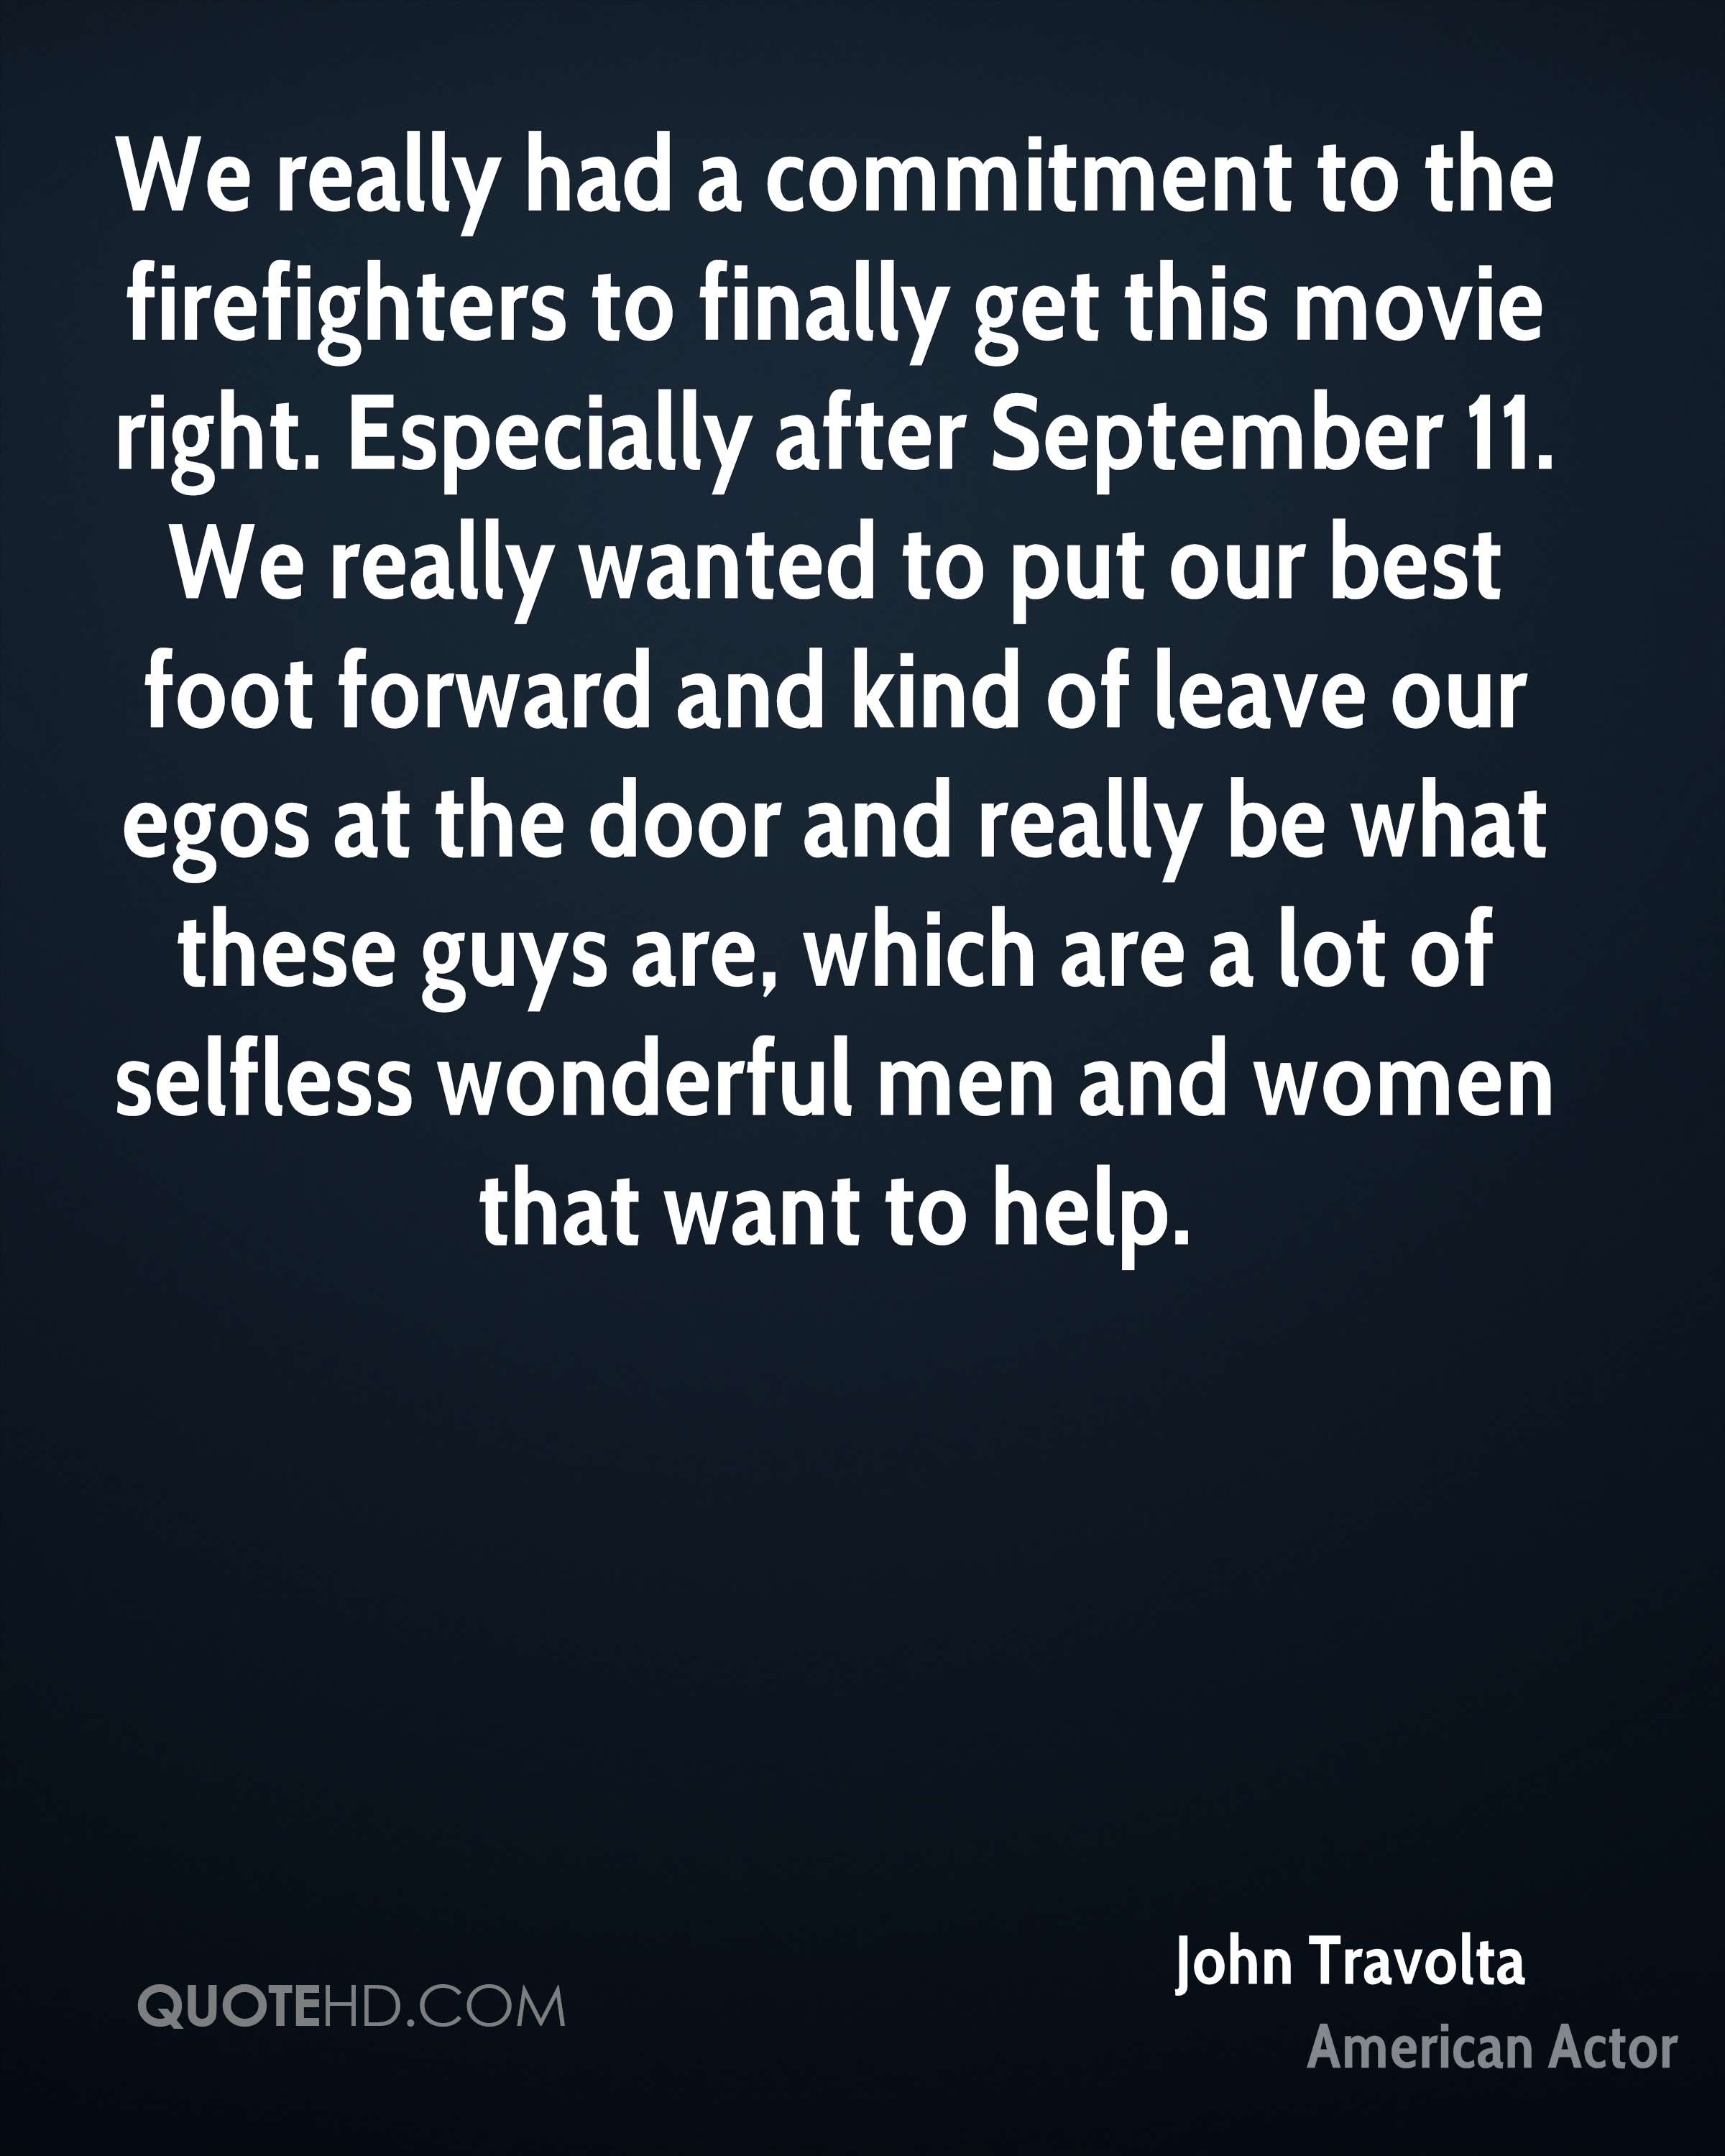 We really had a commitment to the firefighters to finally get this movie right. Especially after September 11. We really wanted to put our best foot forward and kind of leave our egos at the door and really be what these guys are, which are a lot of selfless wonderful men and women that want to help.